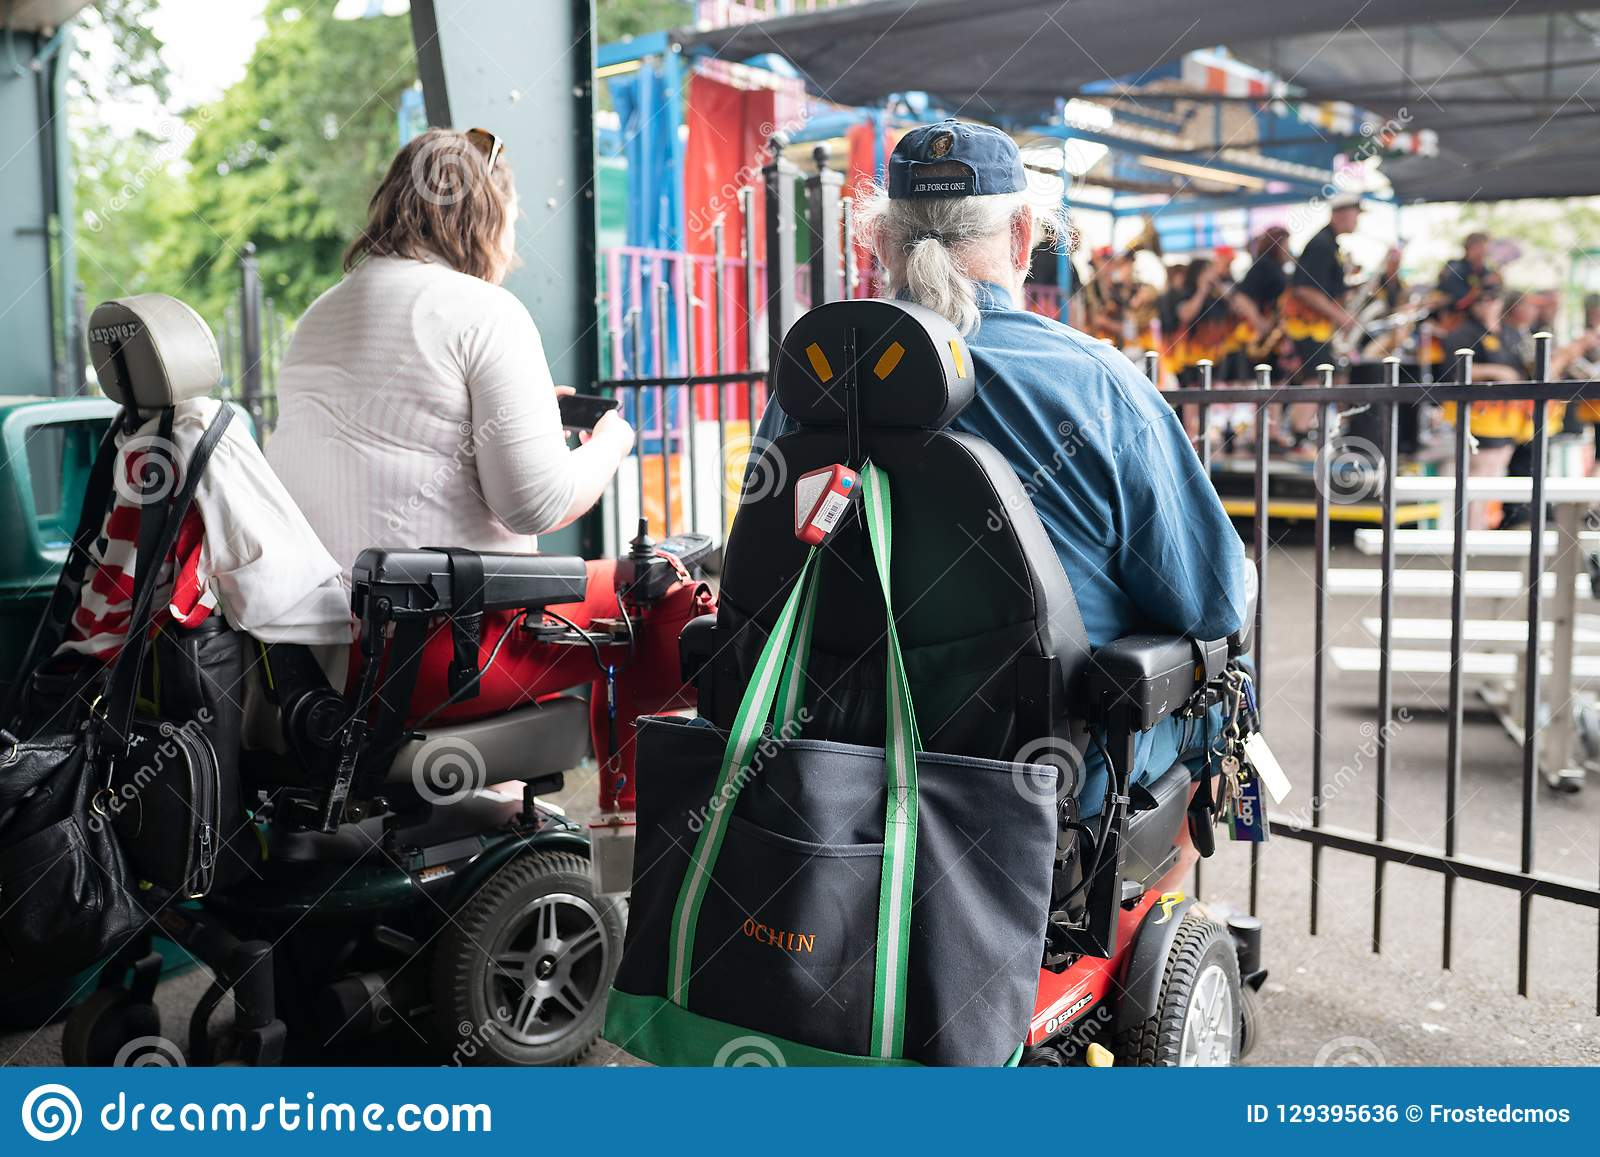 Two people on wheelchairs enjoying the outdoors concert